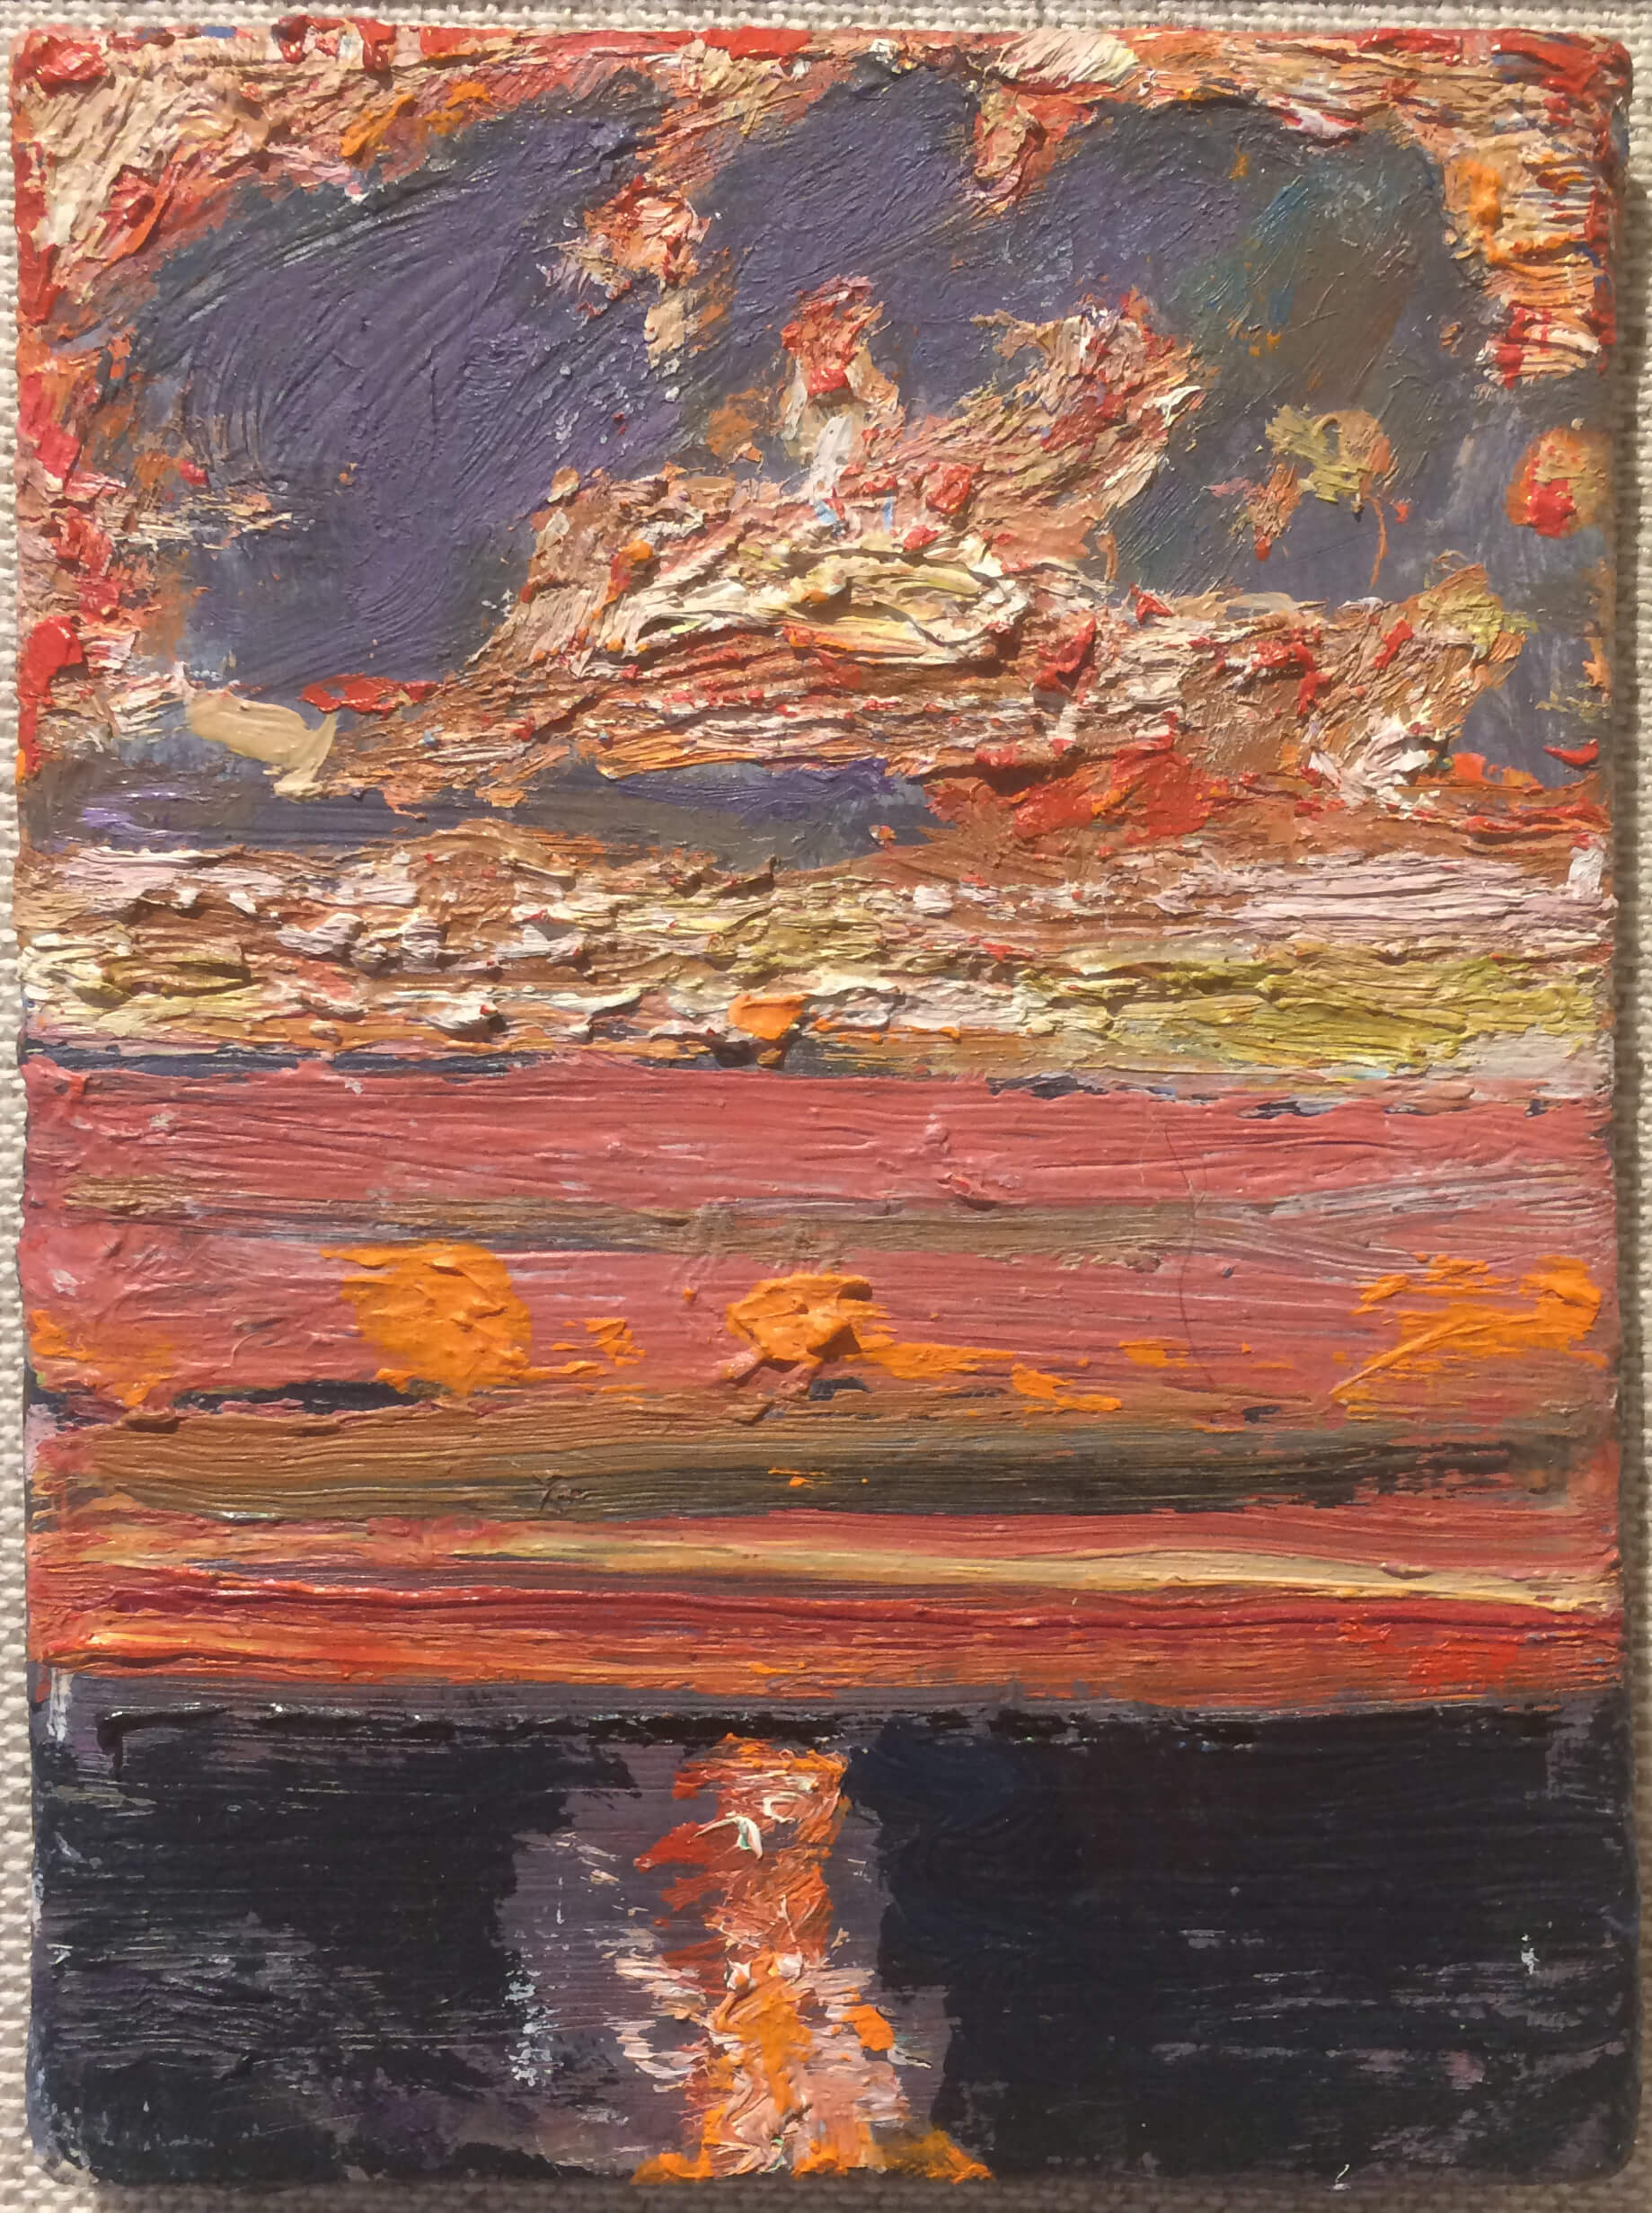 Bernard Chaet, Full Dawn, 2002, oil on canvas mounted on panel (courtesy of Alpha Gallery)